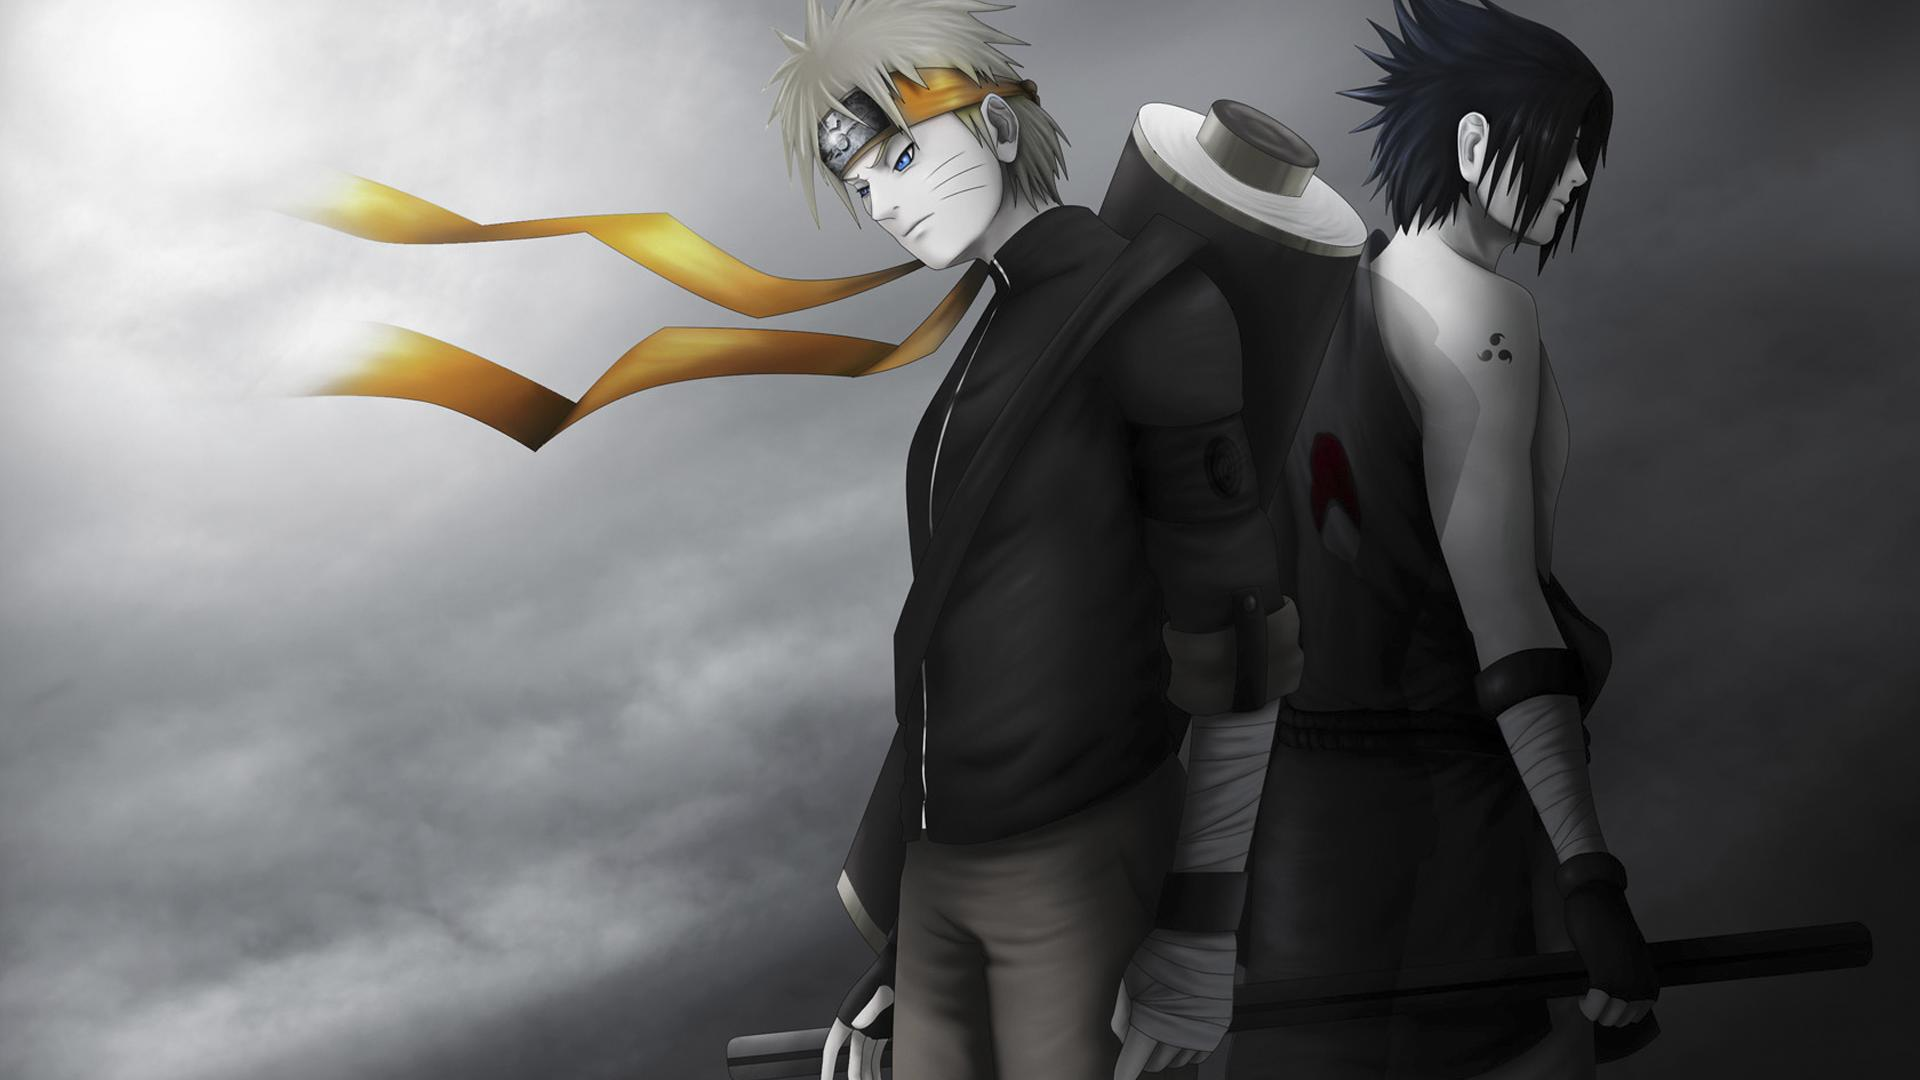 Naruto Wallpaper Big Size Naruto Wallpapers 1920x1080